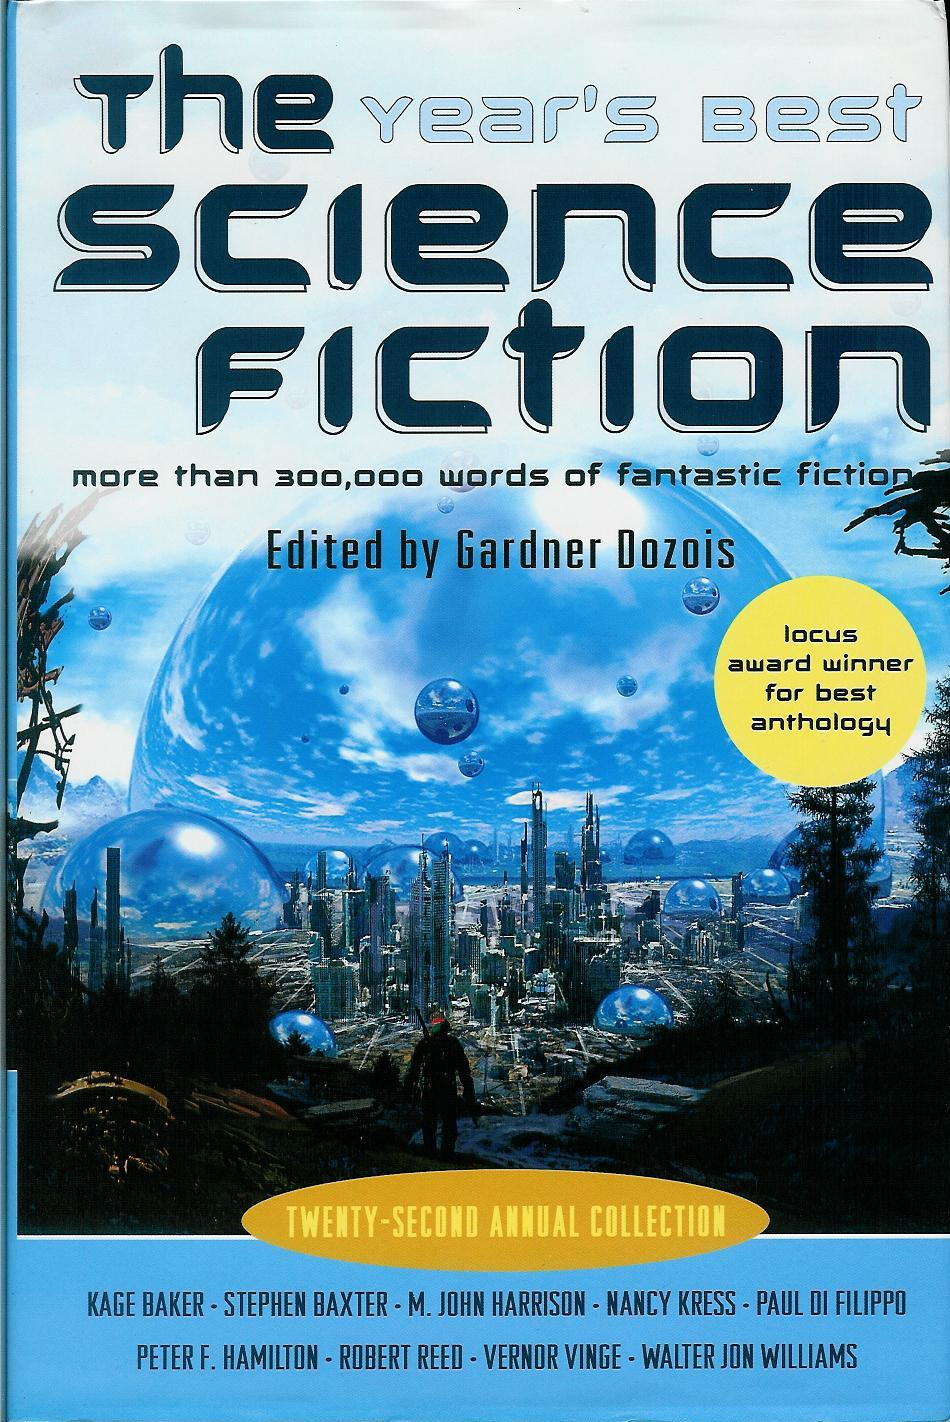 Best Sci Fi & Fantasy 22nd Edition, cover.